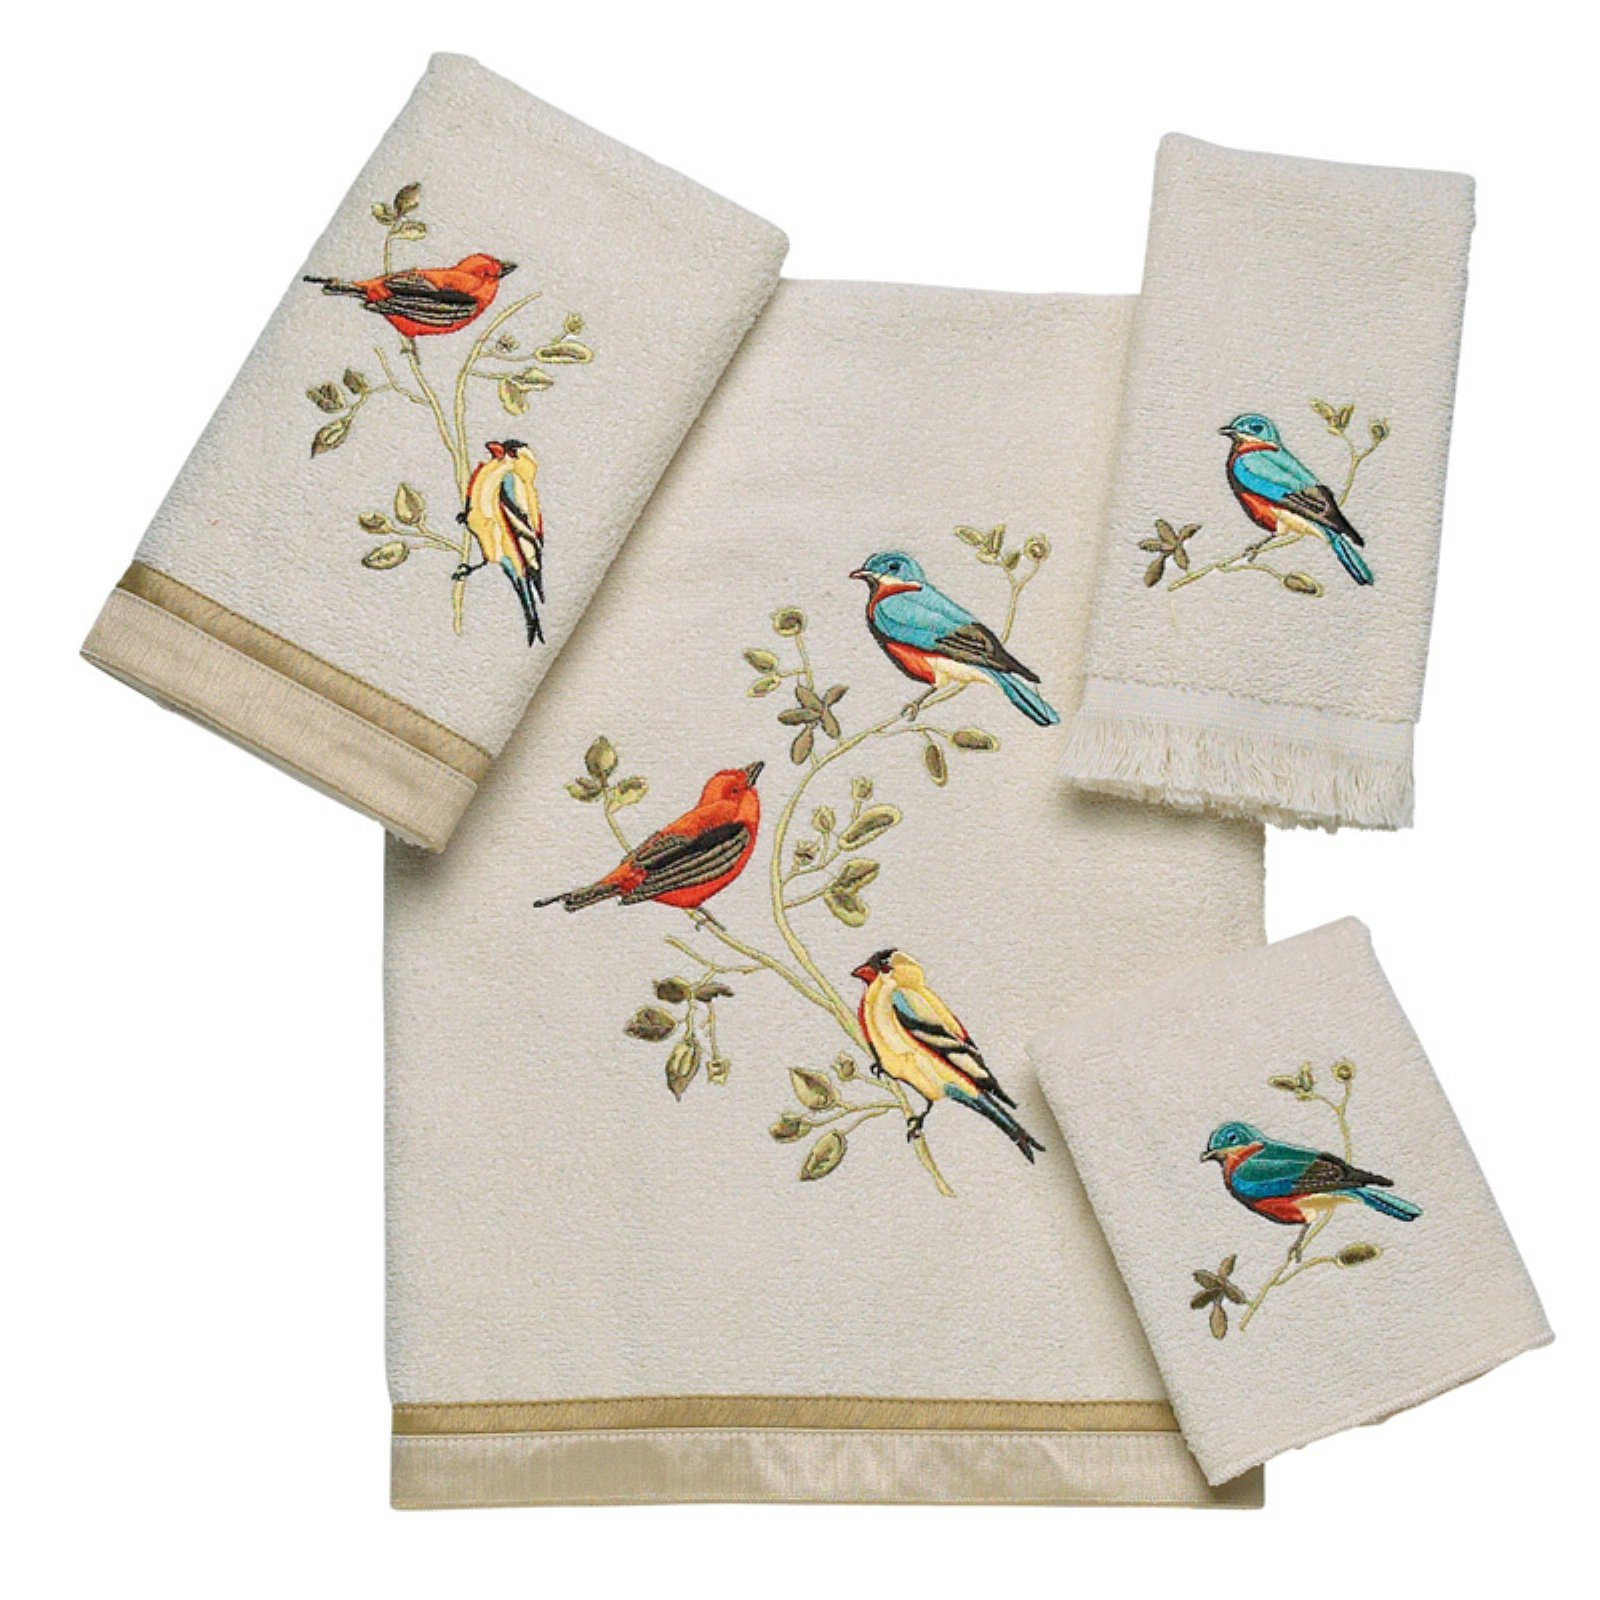 Avanti Linens Gilded Birds 4 Piece Cotton Towel Set